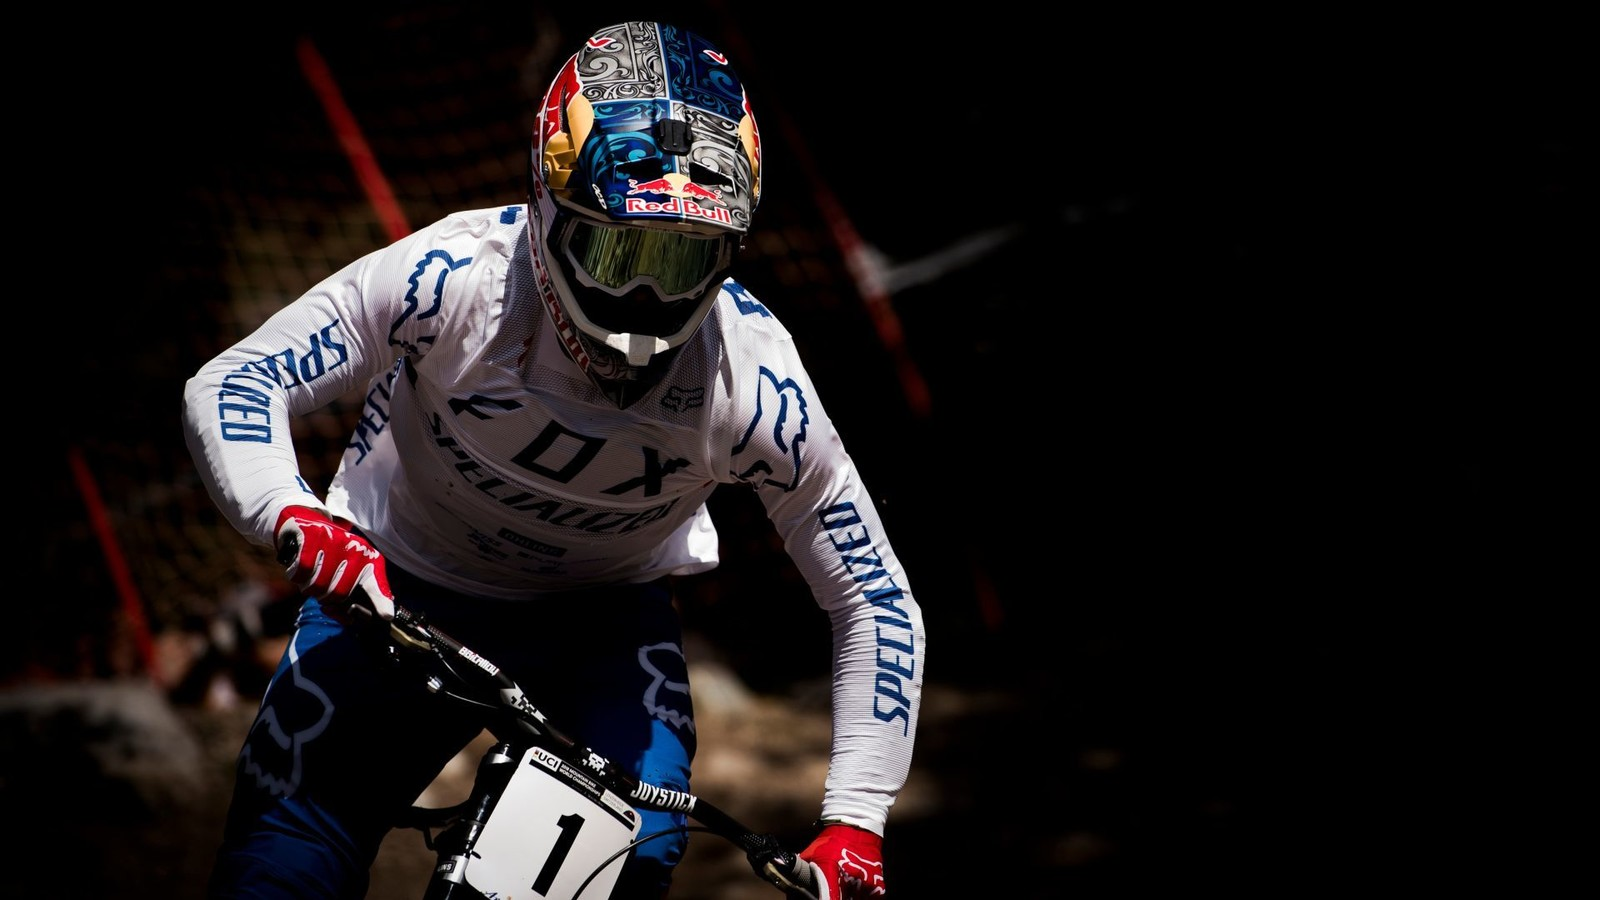 2019 Mountain Bike World Cup Schedule